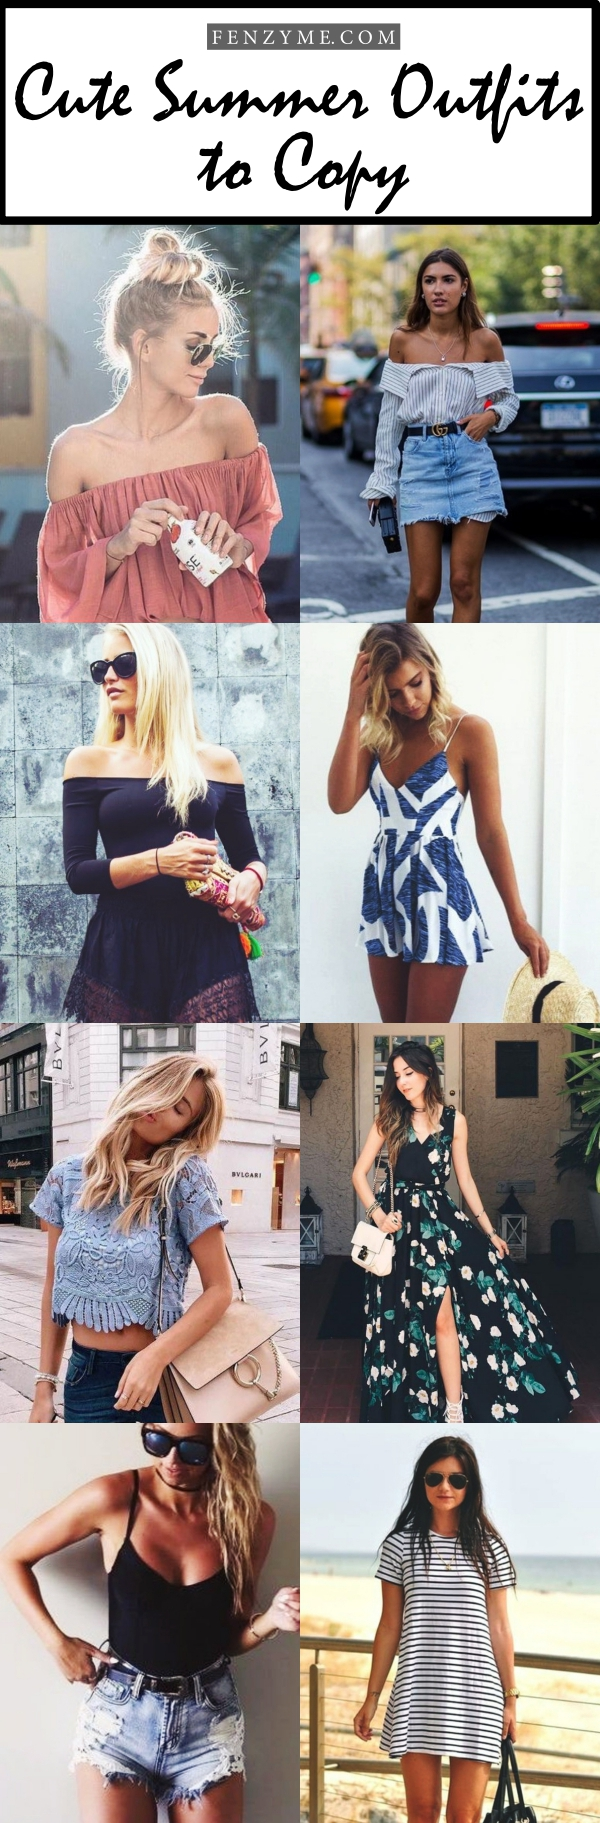 Cute Summer Outfits to Copy1